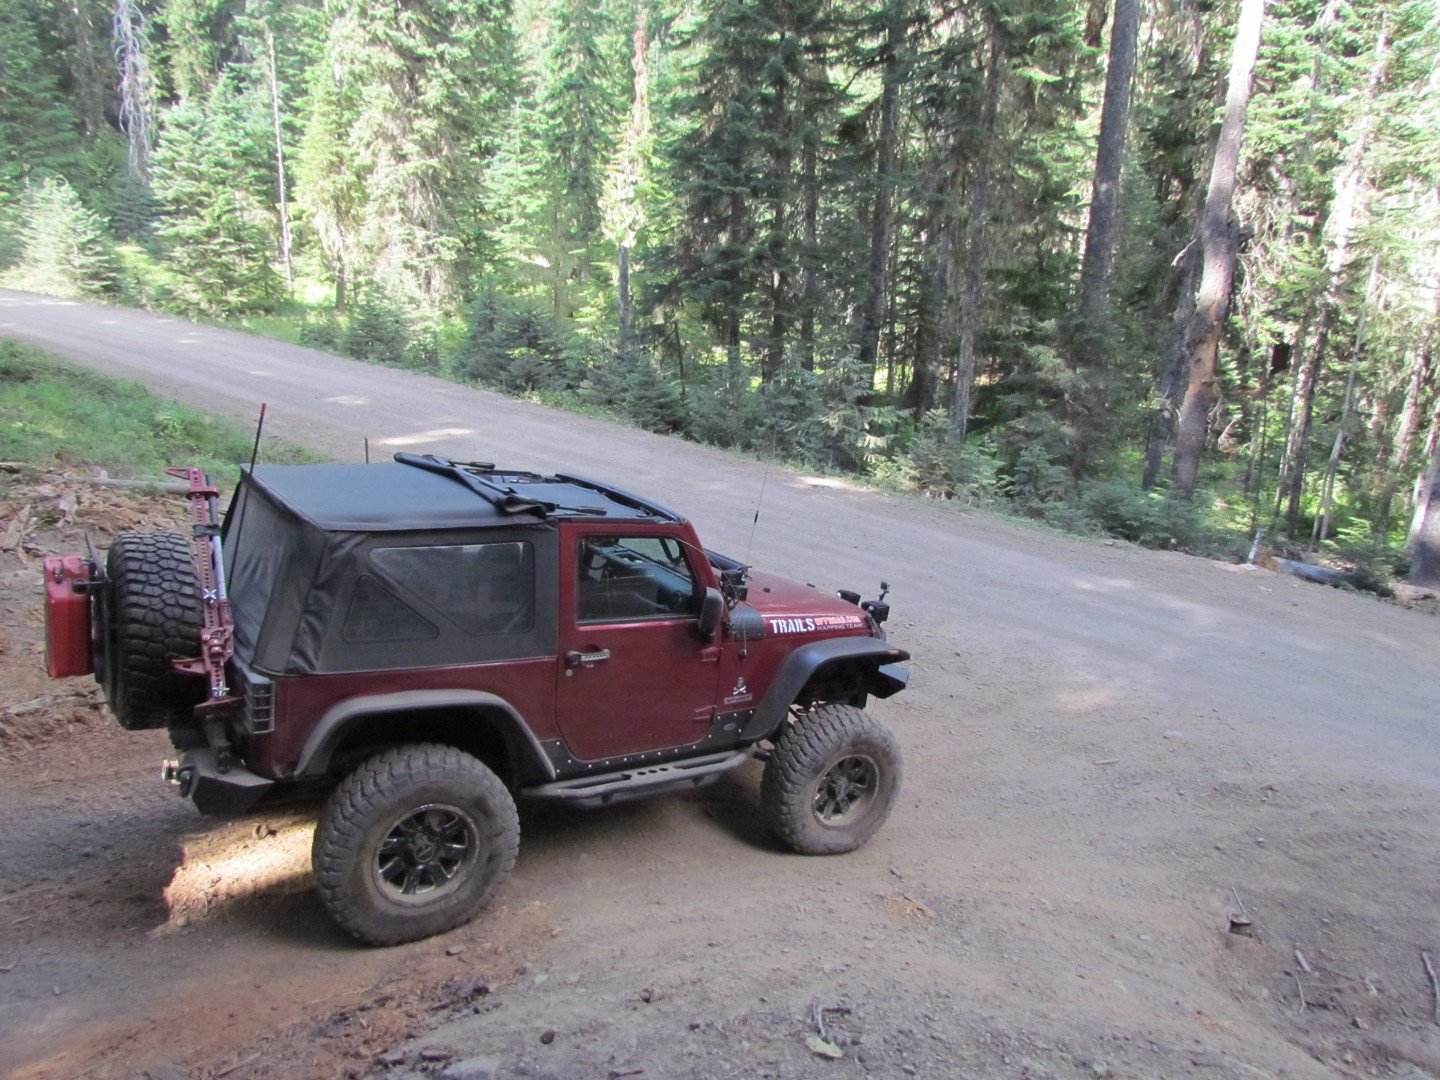 Naches Trail - Waypoint 15: Trail intersection